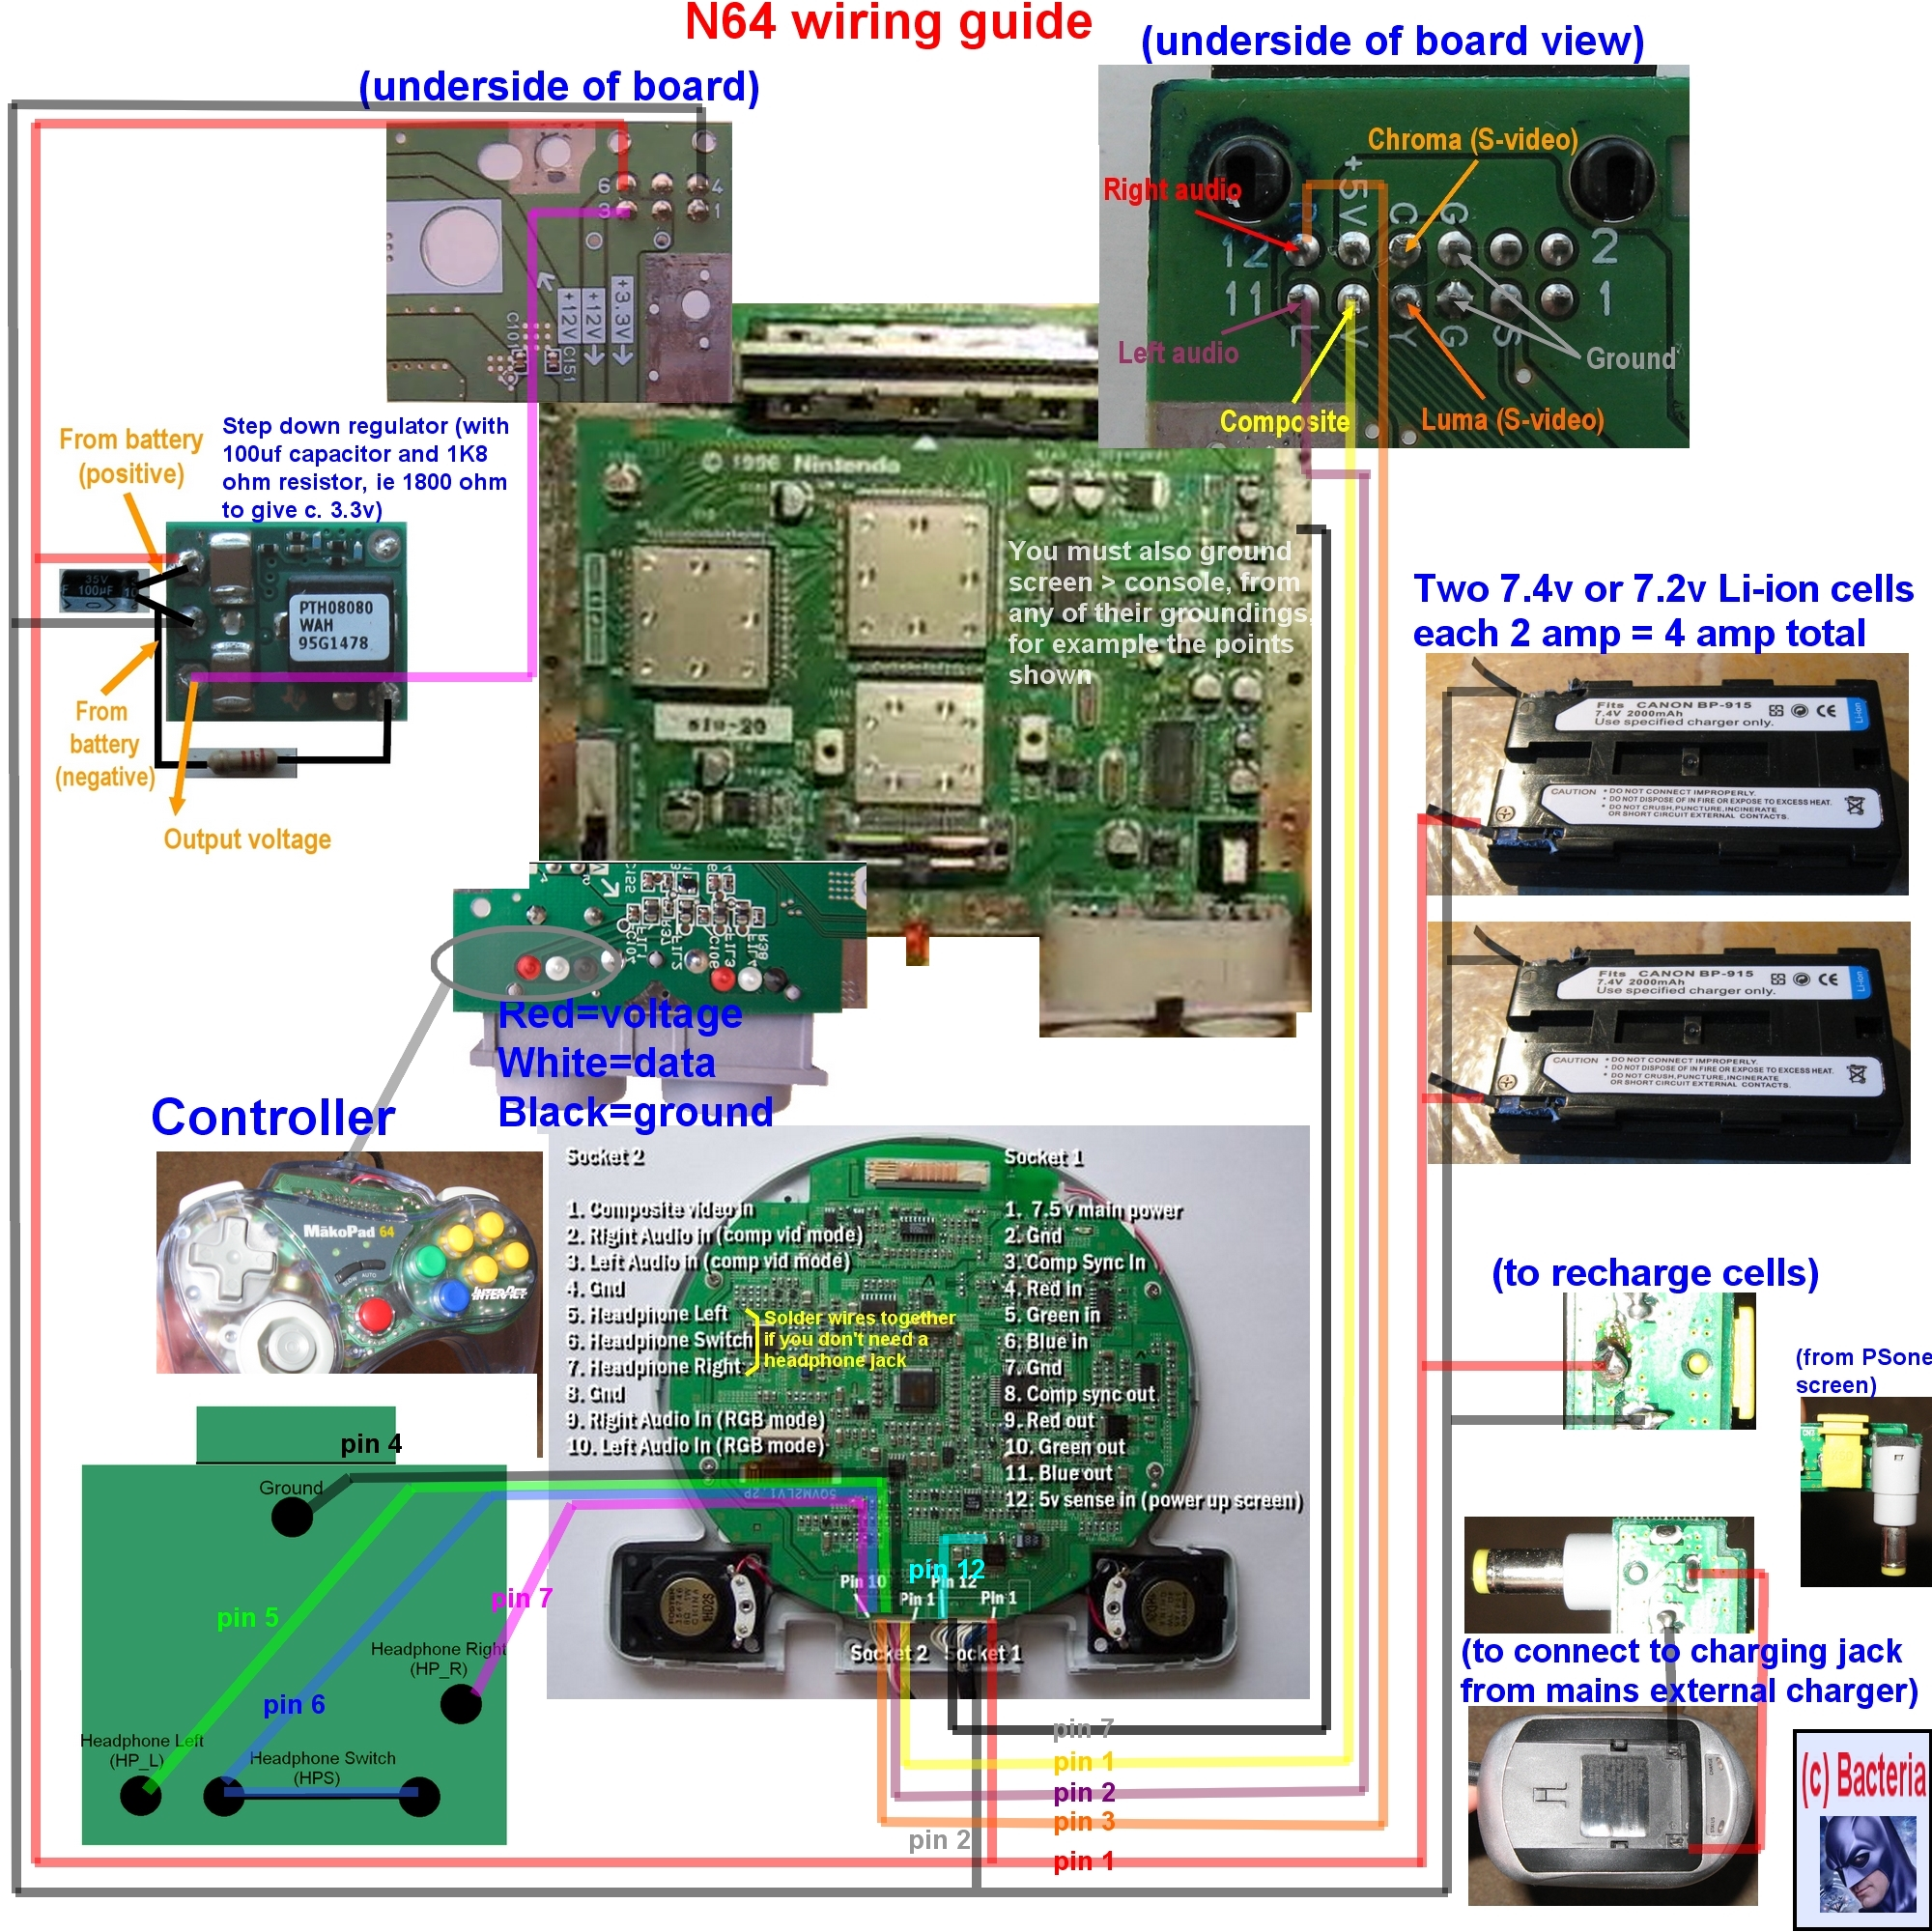 N64 Wiring Diagram Data Saturn Electrical Schematic Racketboy Com U2022 View Topic Complete To Make